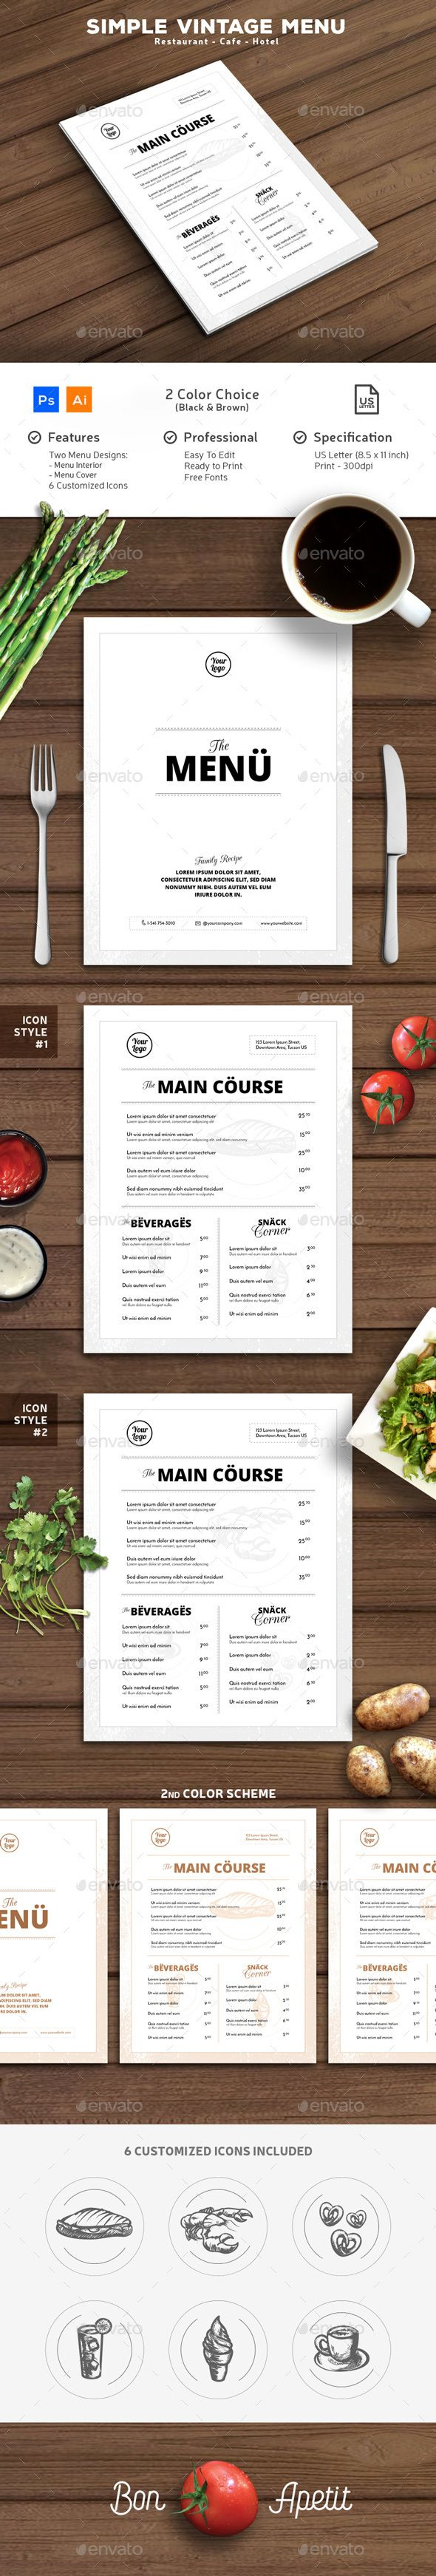 top 25 best vintage menu ideas on pinterest